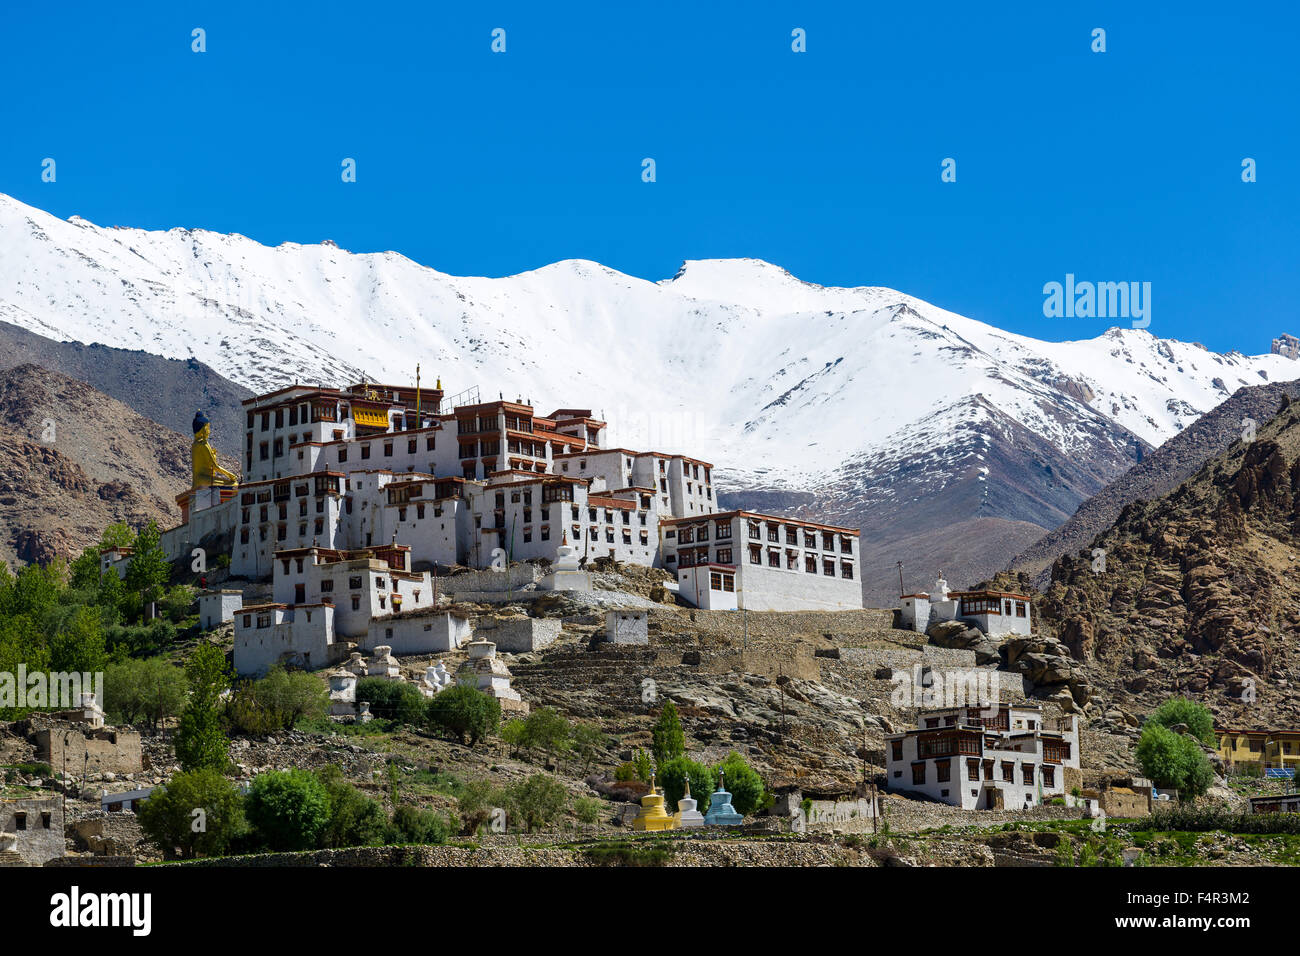 The Buildings of Likir Gompa, a monastery located on a hill in barren landscape, snow covered mountains in the distance - Stock Image